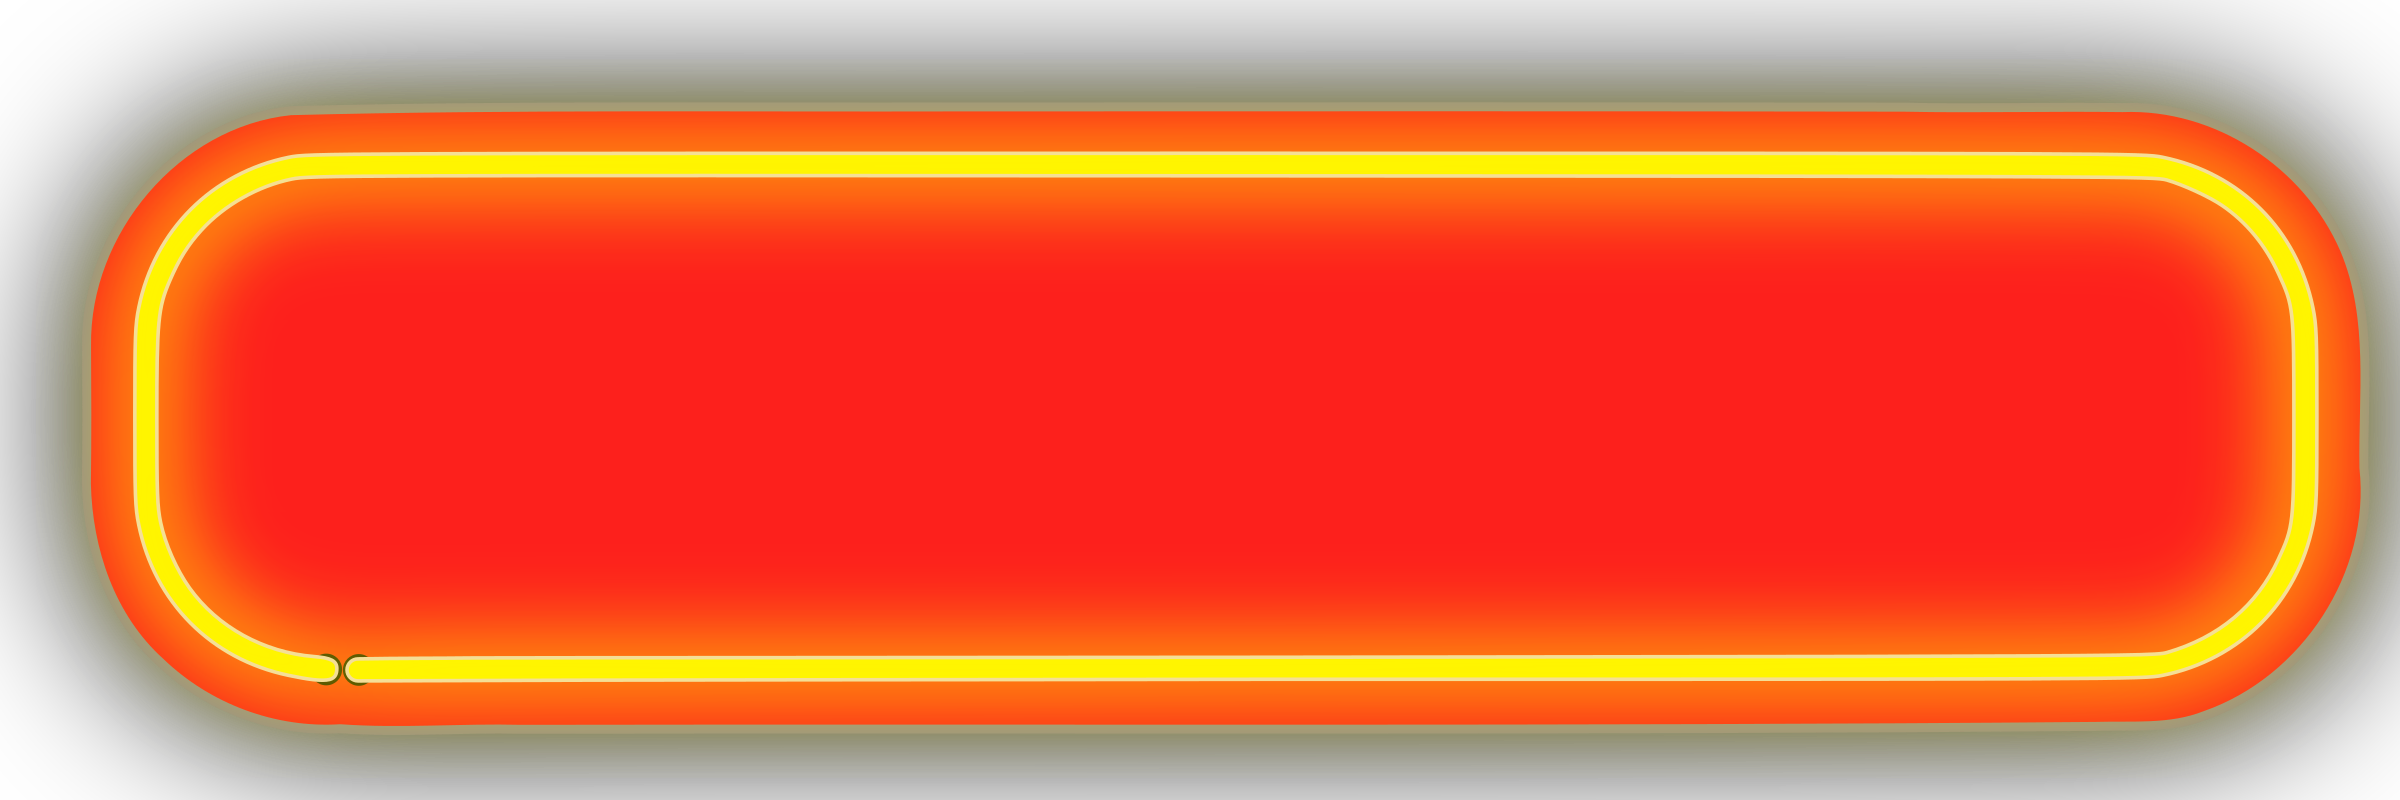 Neon border png. Background icons free and